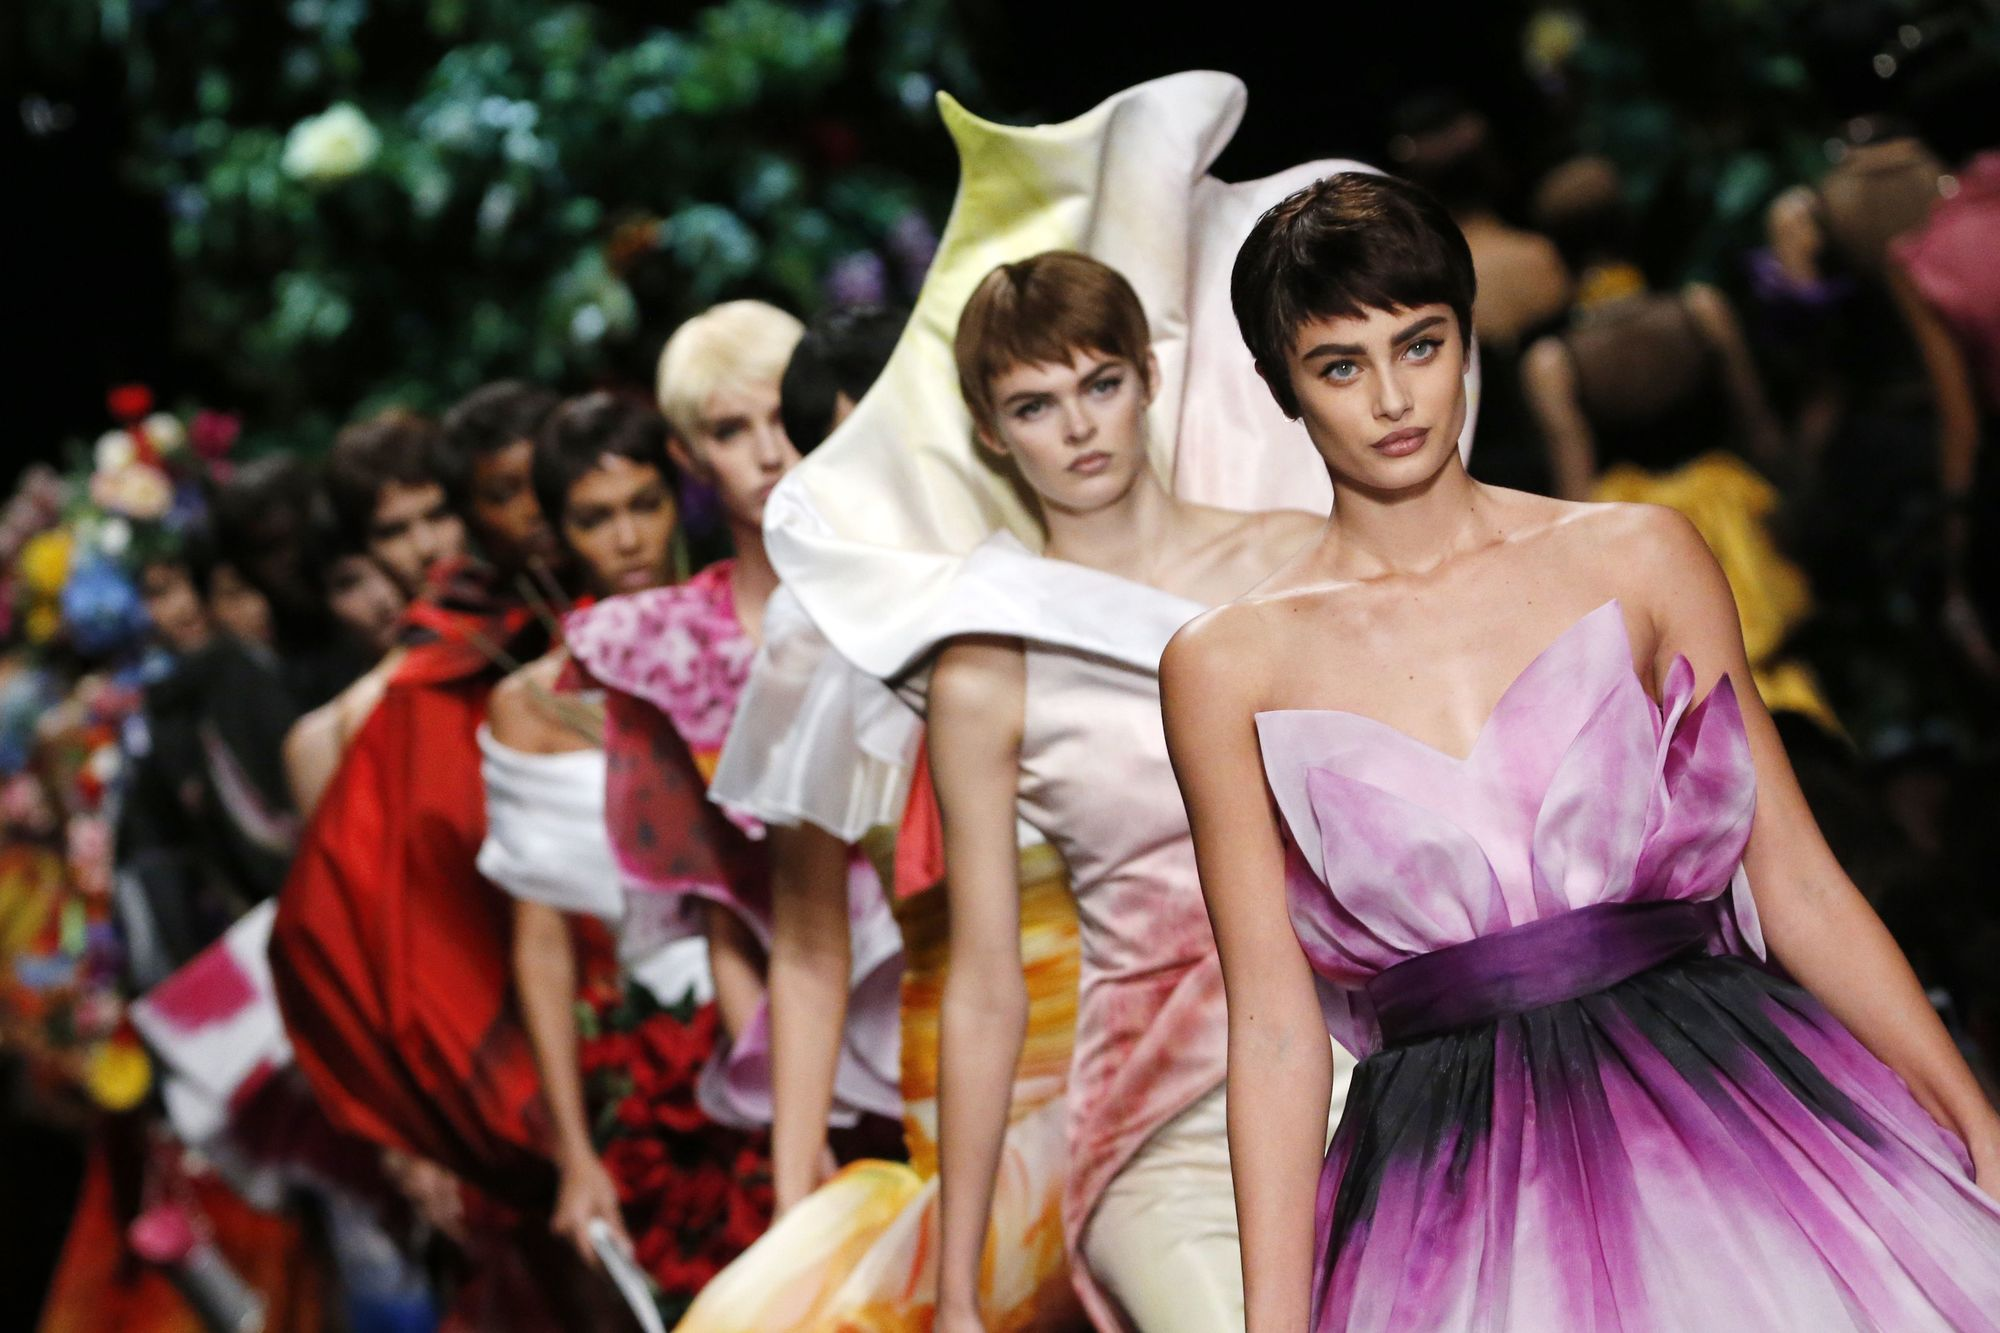 milan fashion week: moschino spring/summer 2018 runway with models wearing fairy tale costumes with pixie cut wigs